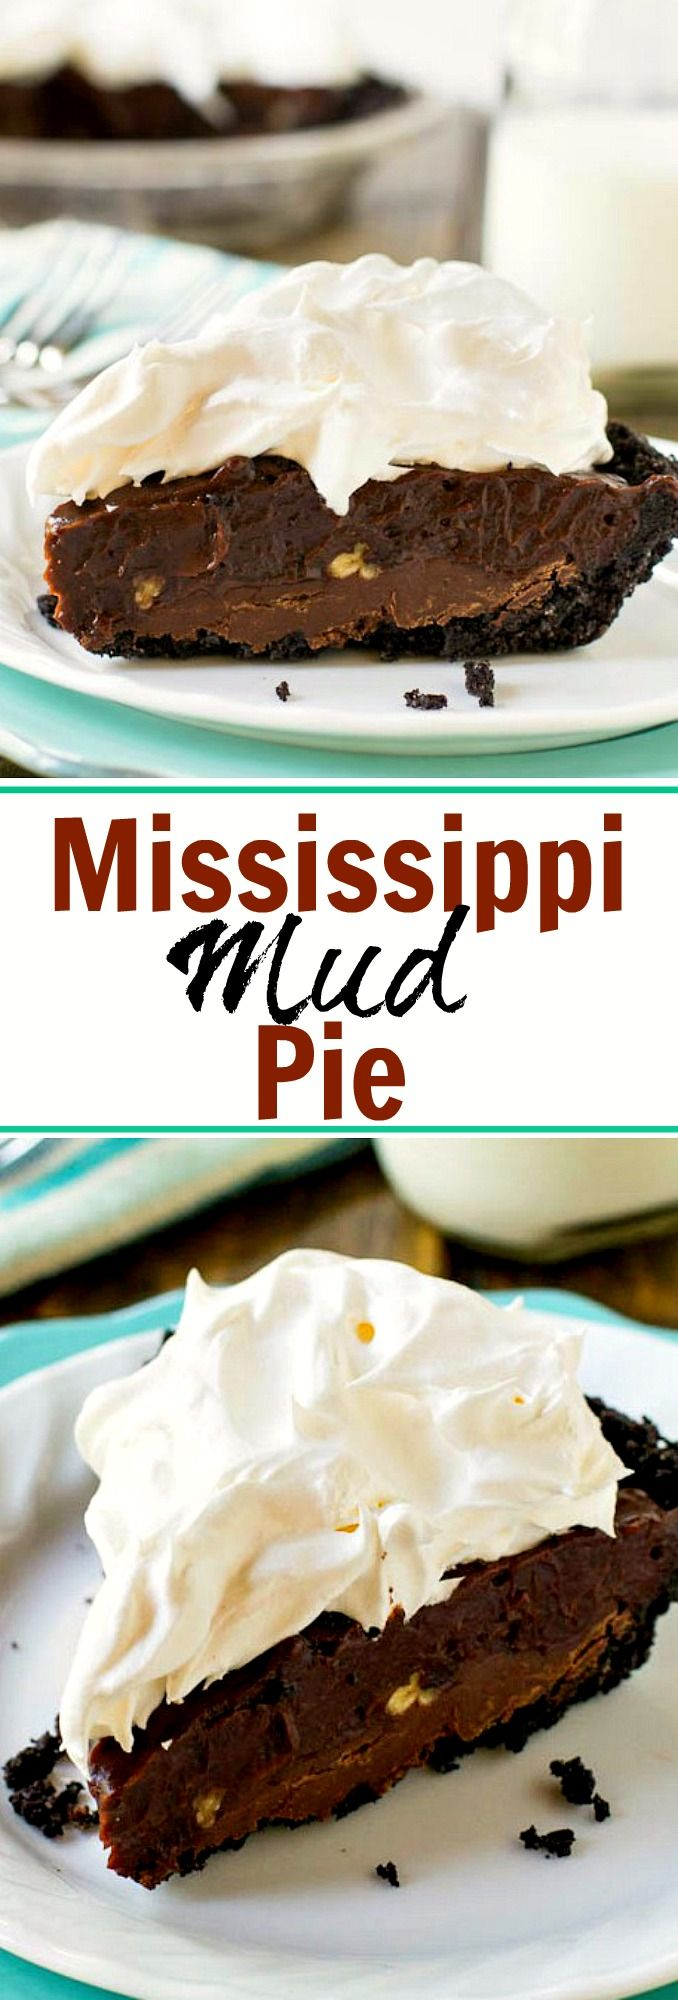 Mississippi Mud Pie- Super easy and super delicious. This pie is pure chocolate heaven. Don't expect any leftovers.